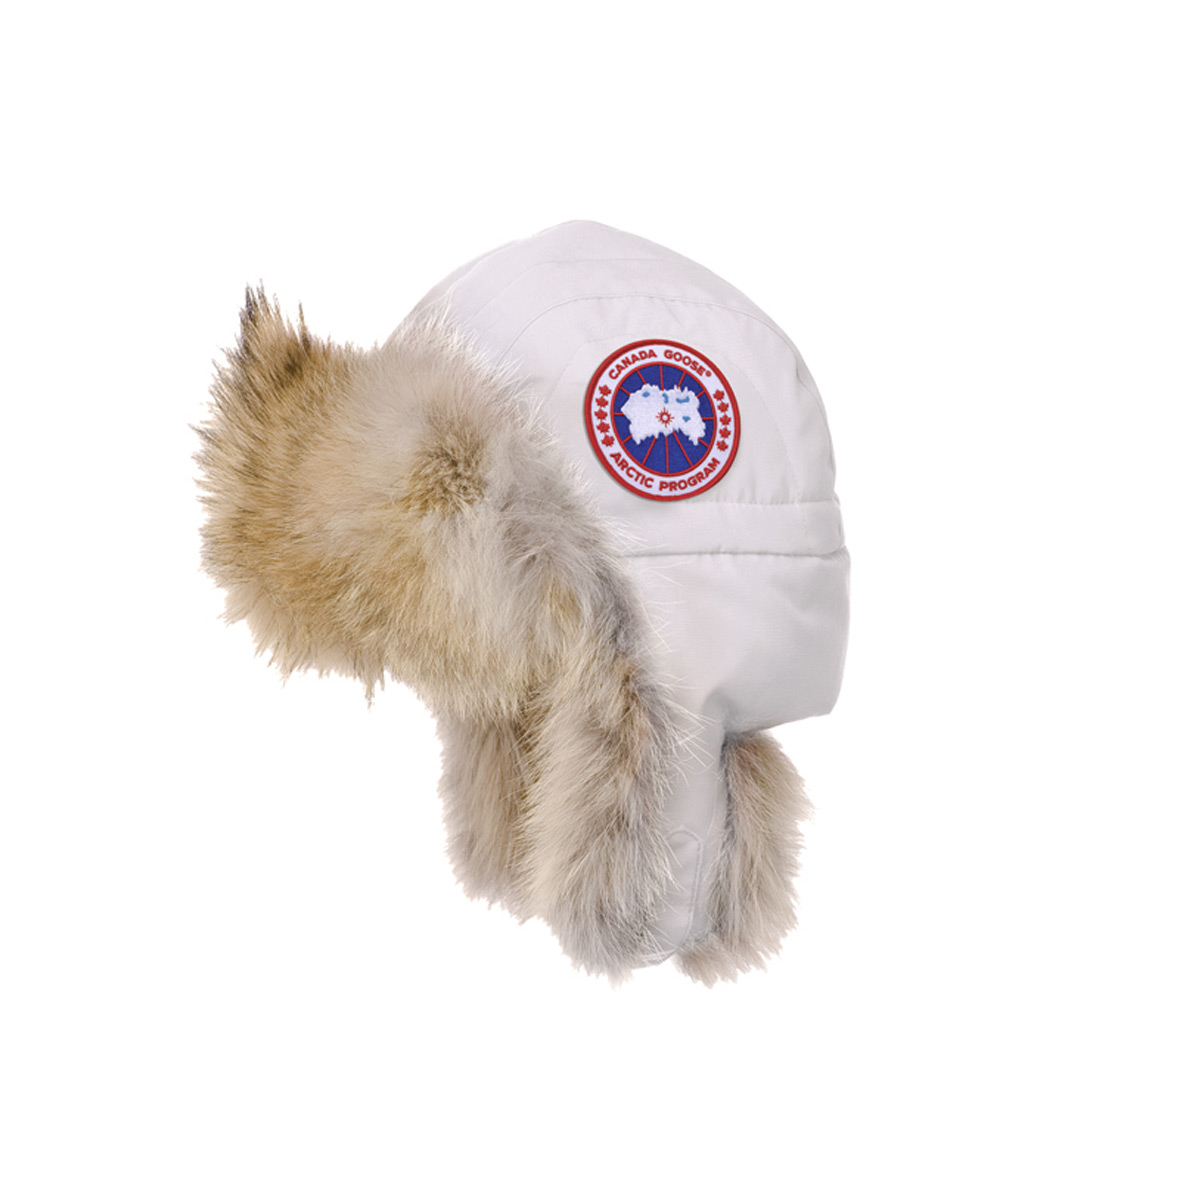 Canada Goose Unisex Aviator Hat LIGHT GREY For Men